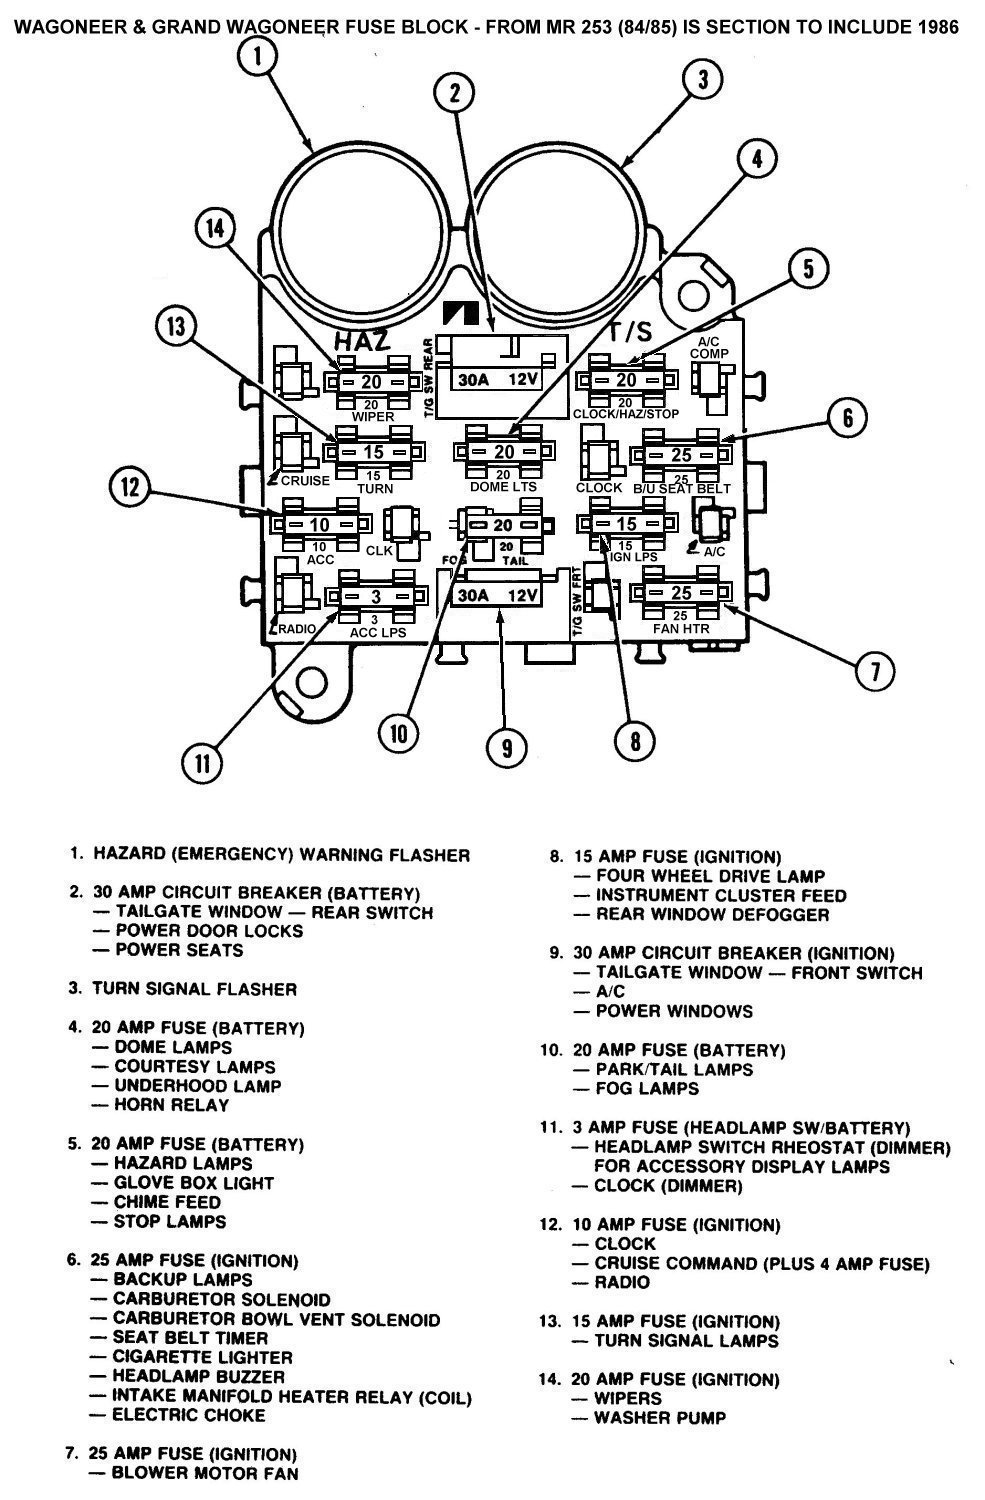 tom oljeep collins fsj wiring page rh oljeep com 1966 Jeep CJ5 Wiring-Diagram 1979 jeep cj5 fuse box diagram